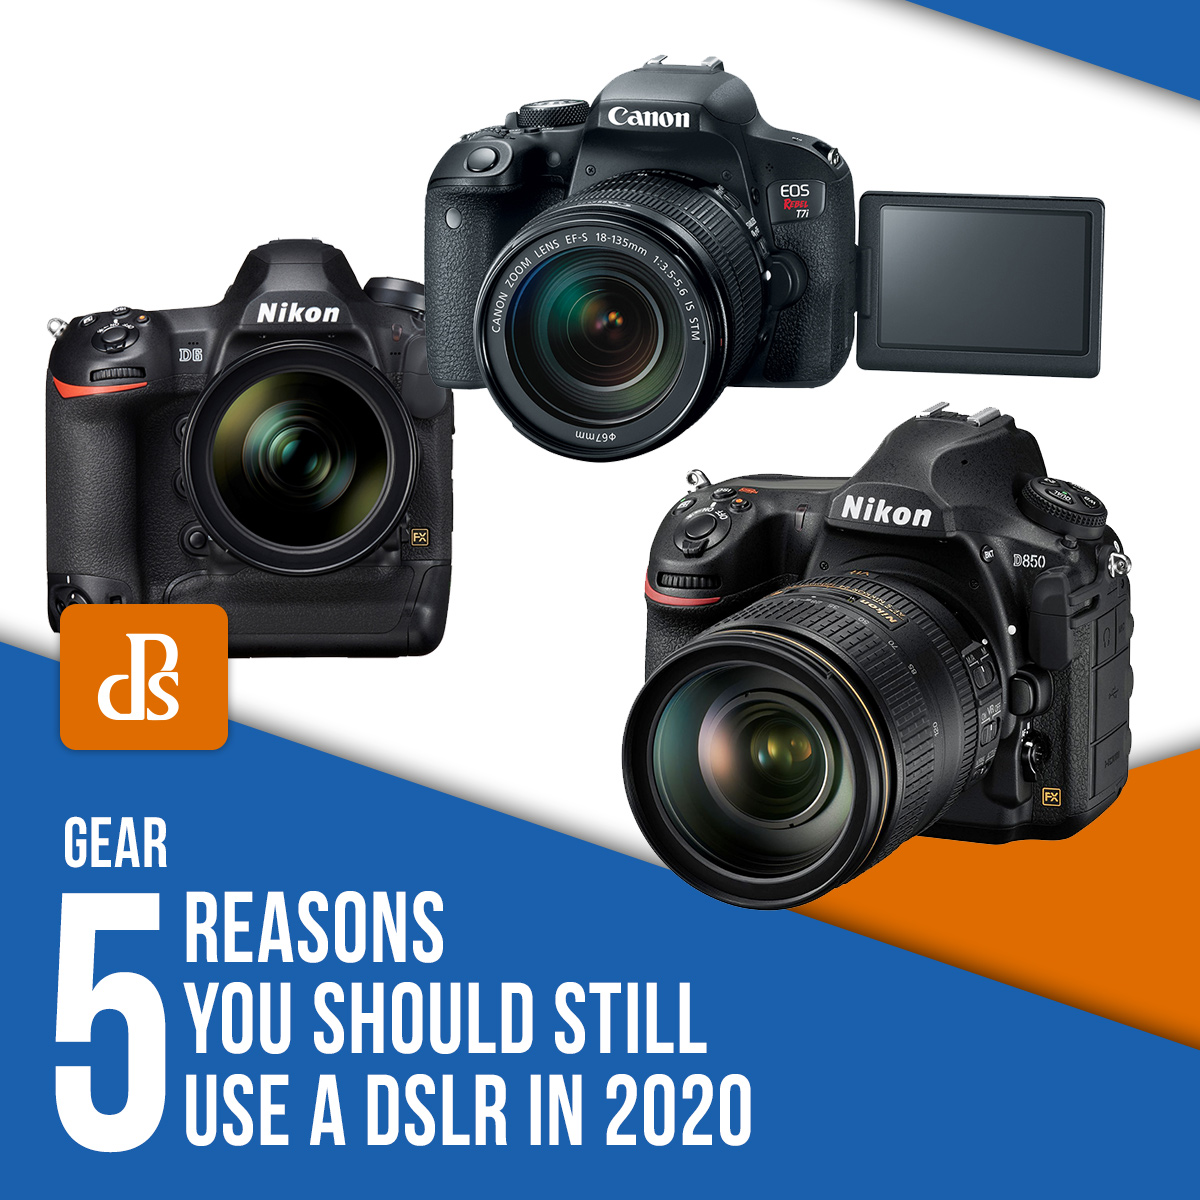 5 Reasons You Should Still Use a DSLR in 2020 Feature Graphic